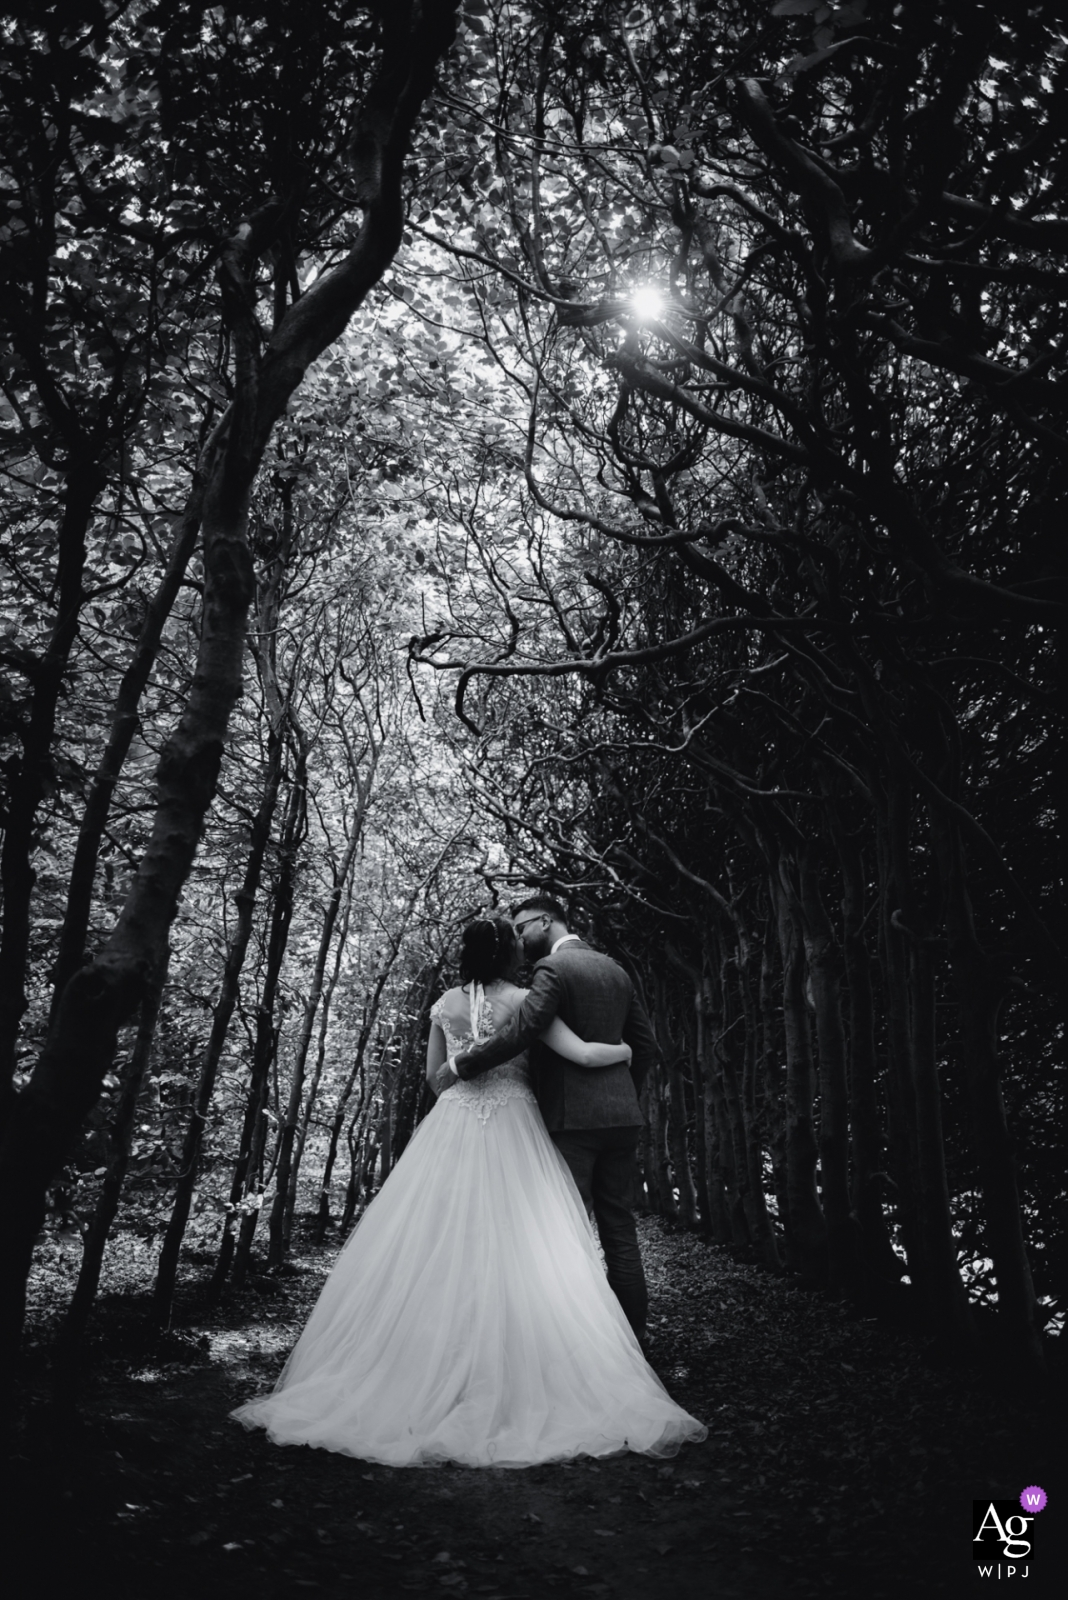 gieten Lovers lane portrait of bride and groom in black and white